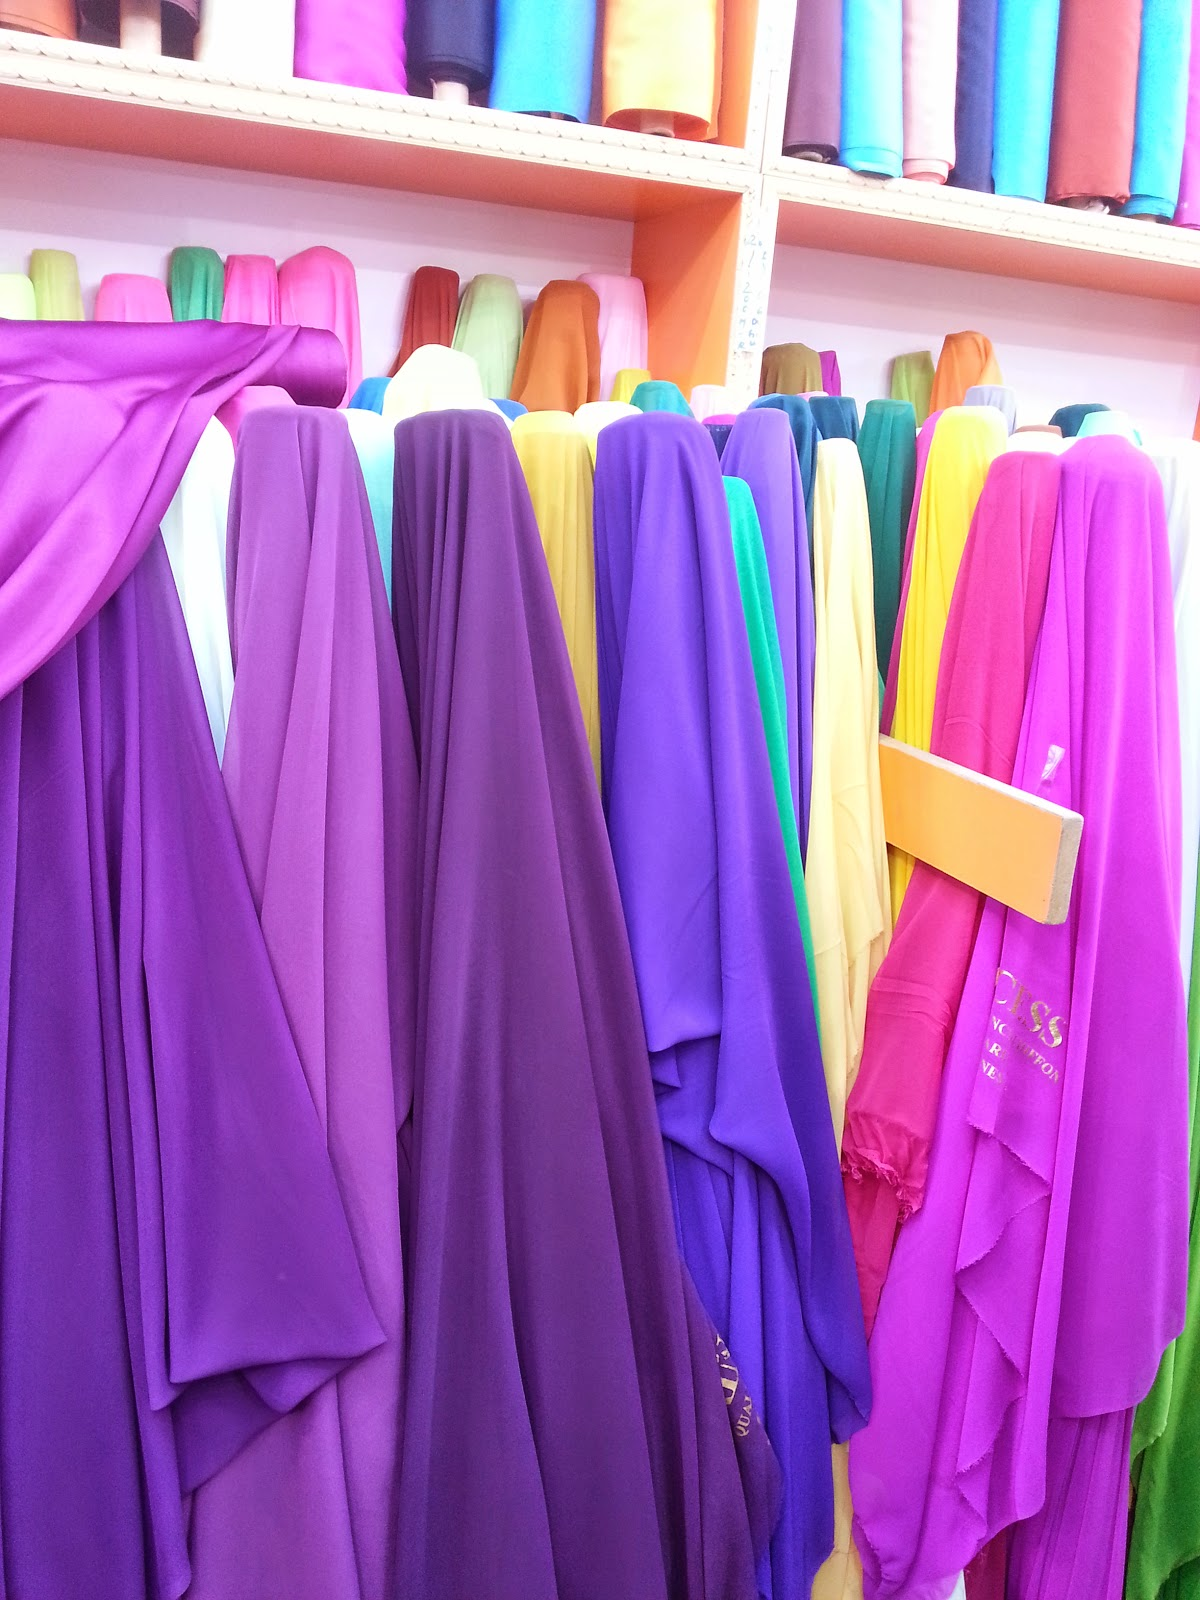 fabric shops muscat